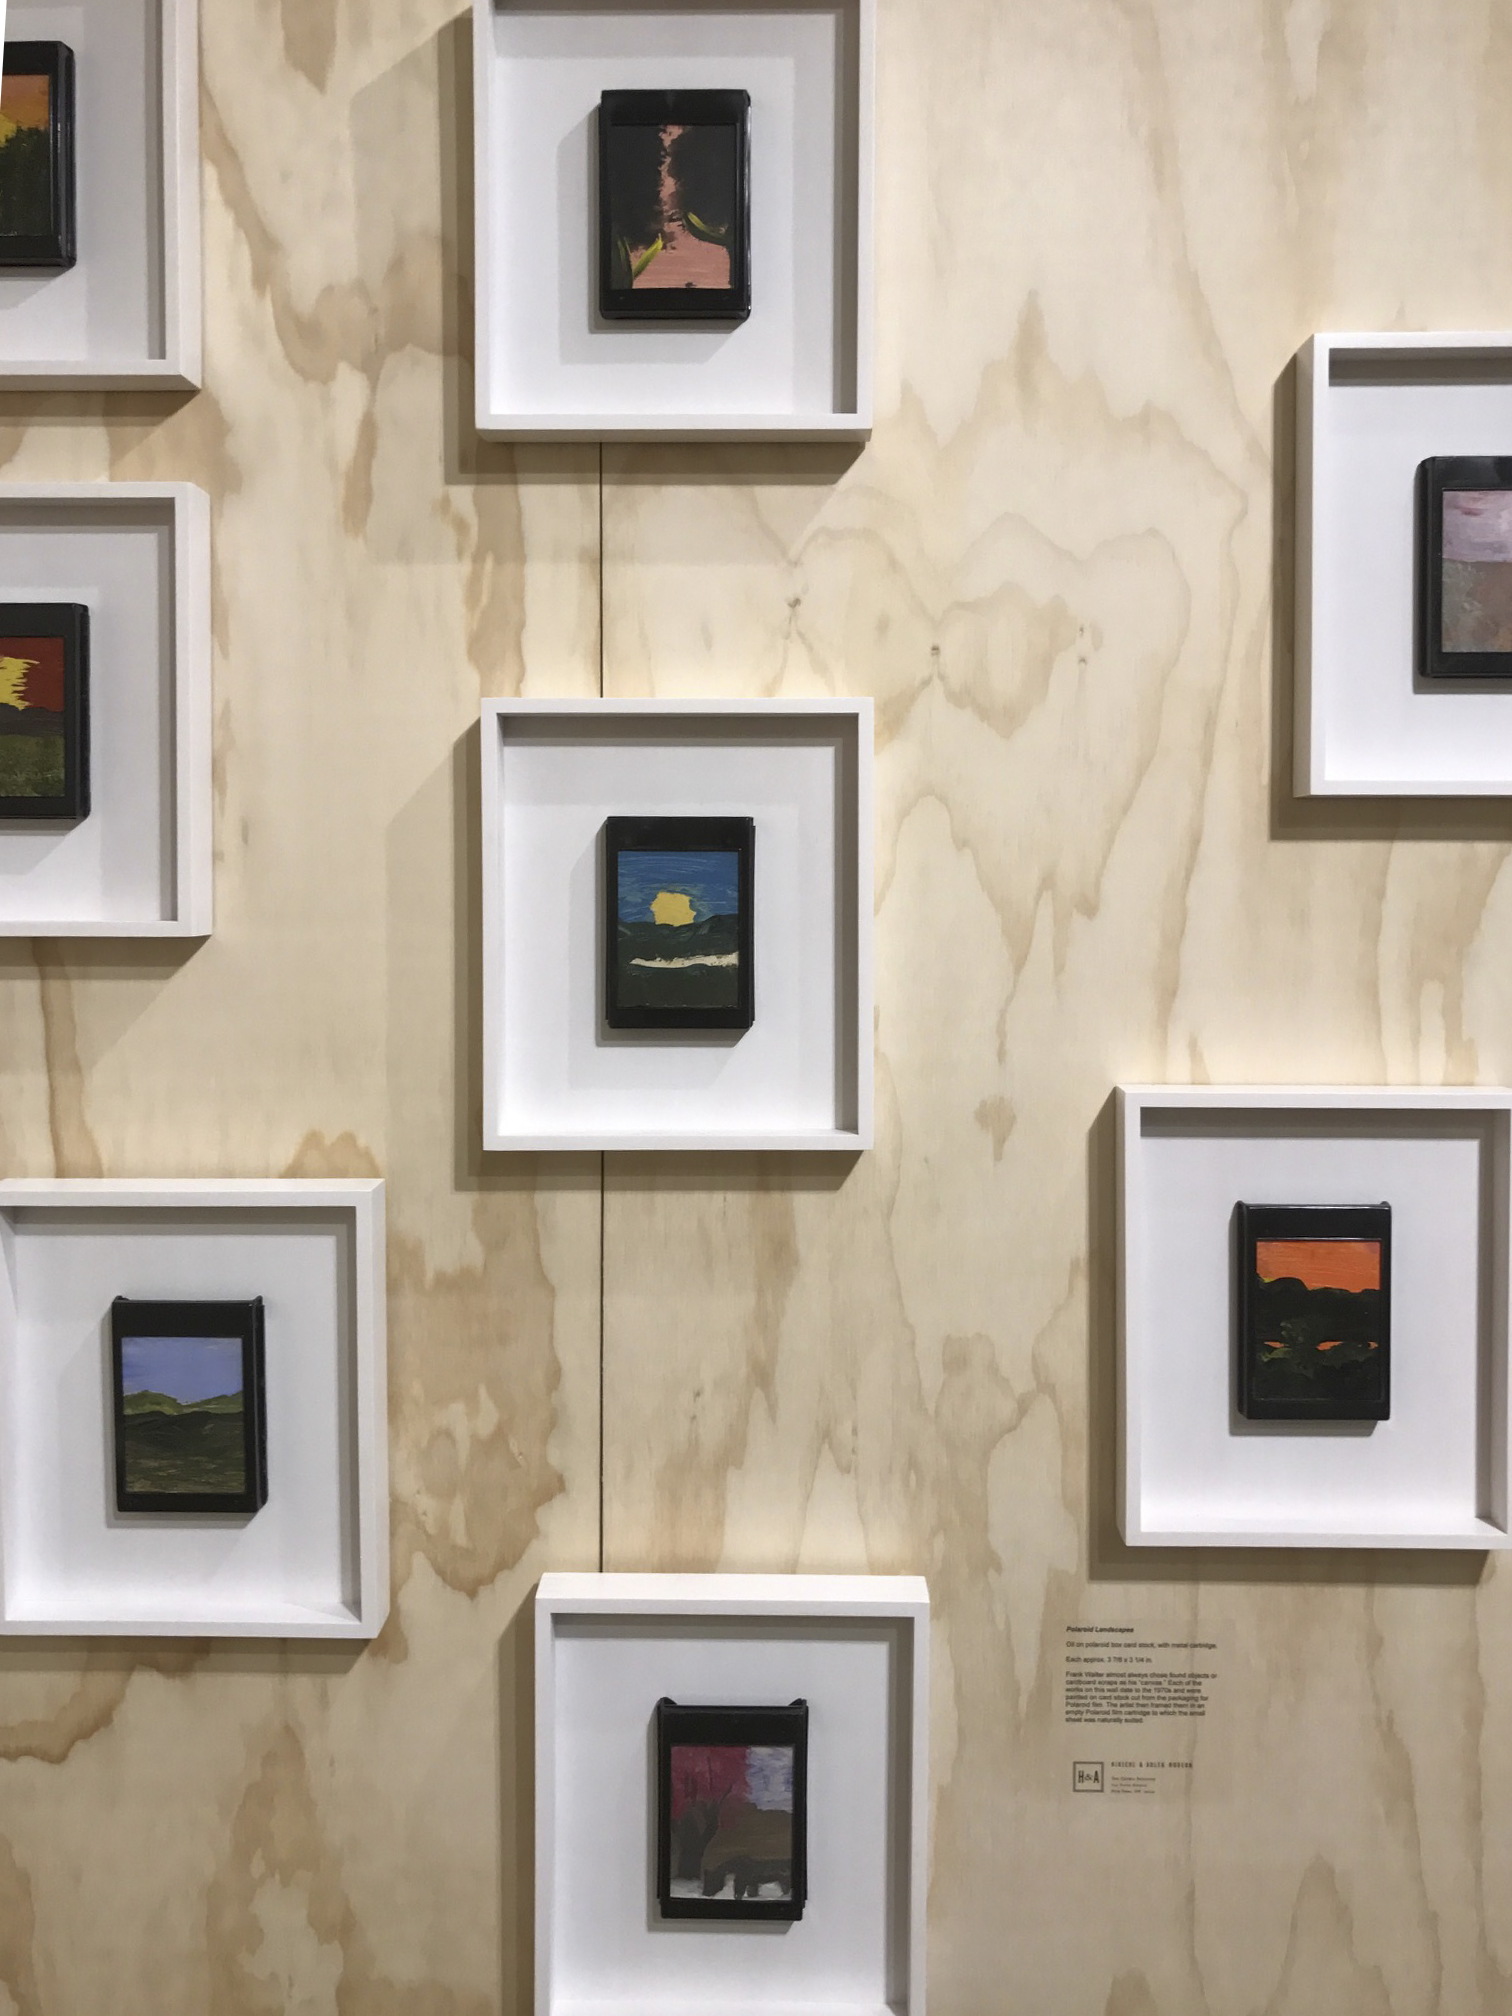 Frank Walter paintings on discarded Poloroid cartridges. Photo by the author.